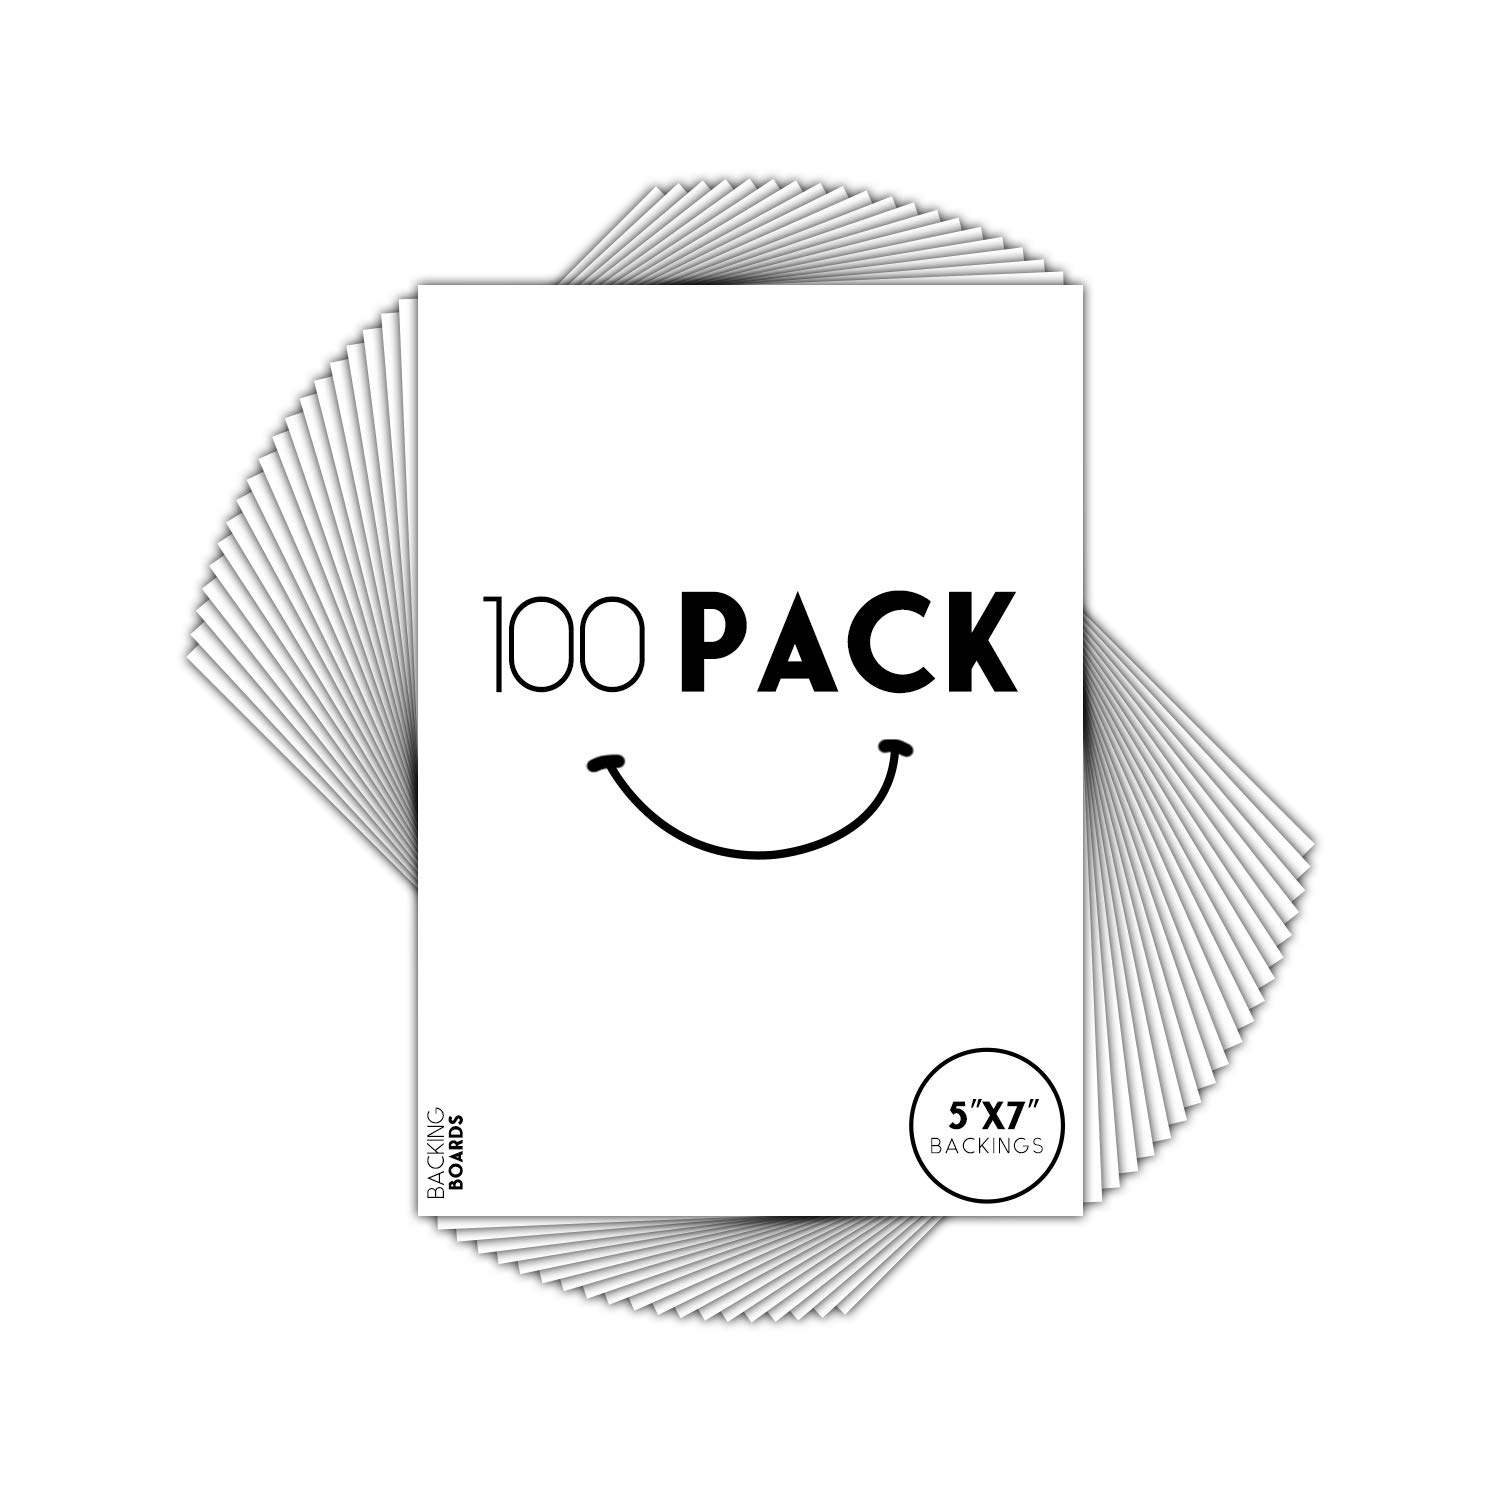 Golden State Art, Pack of 100, 5x7 Backer Board Only - for Art, Photos, Print - 4-Ply - 100 Single Backing Boards